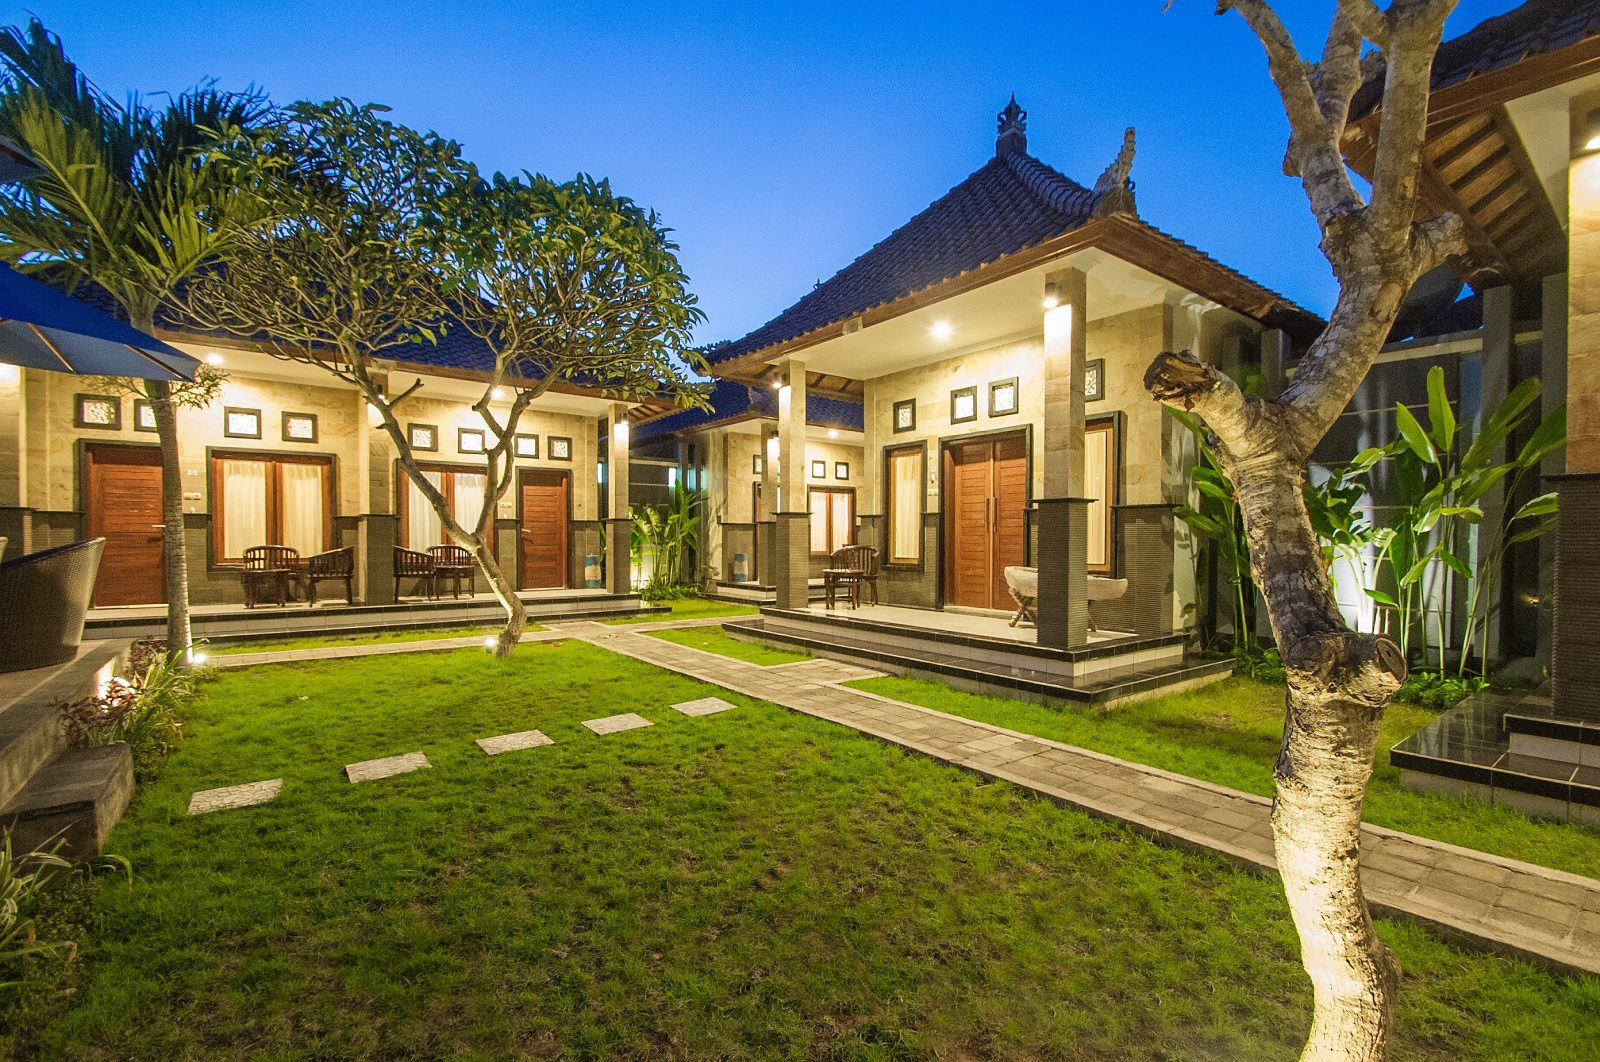 Lembongan Boutique Resort By Trm Modern Chic Hotel At